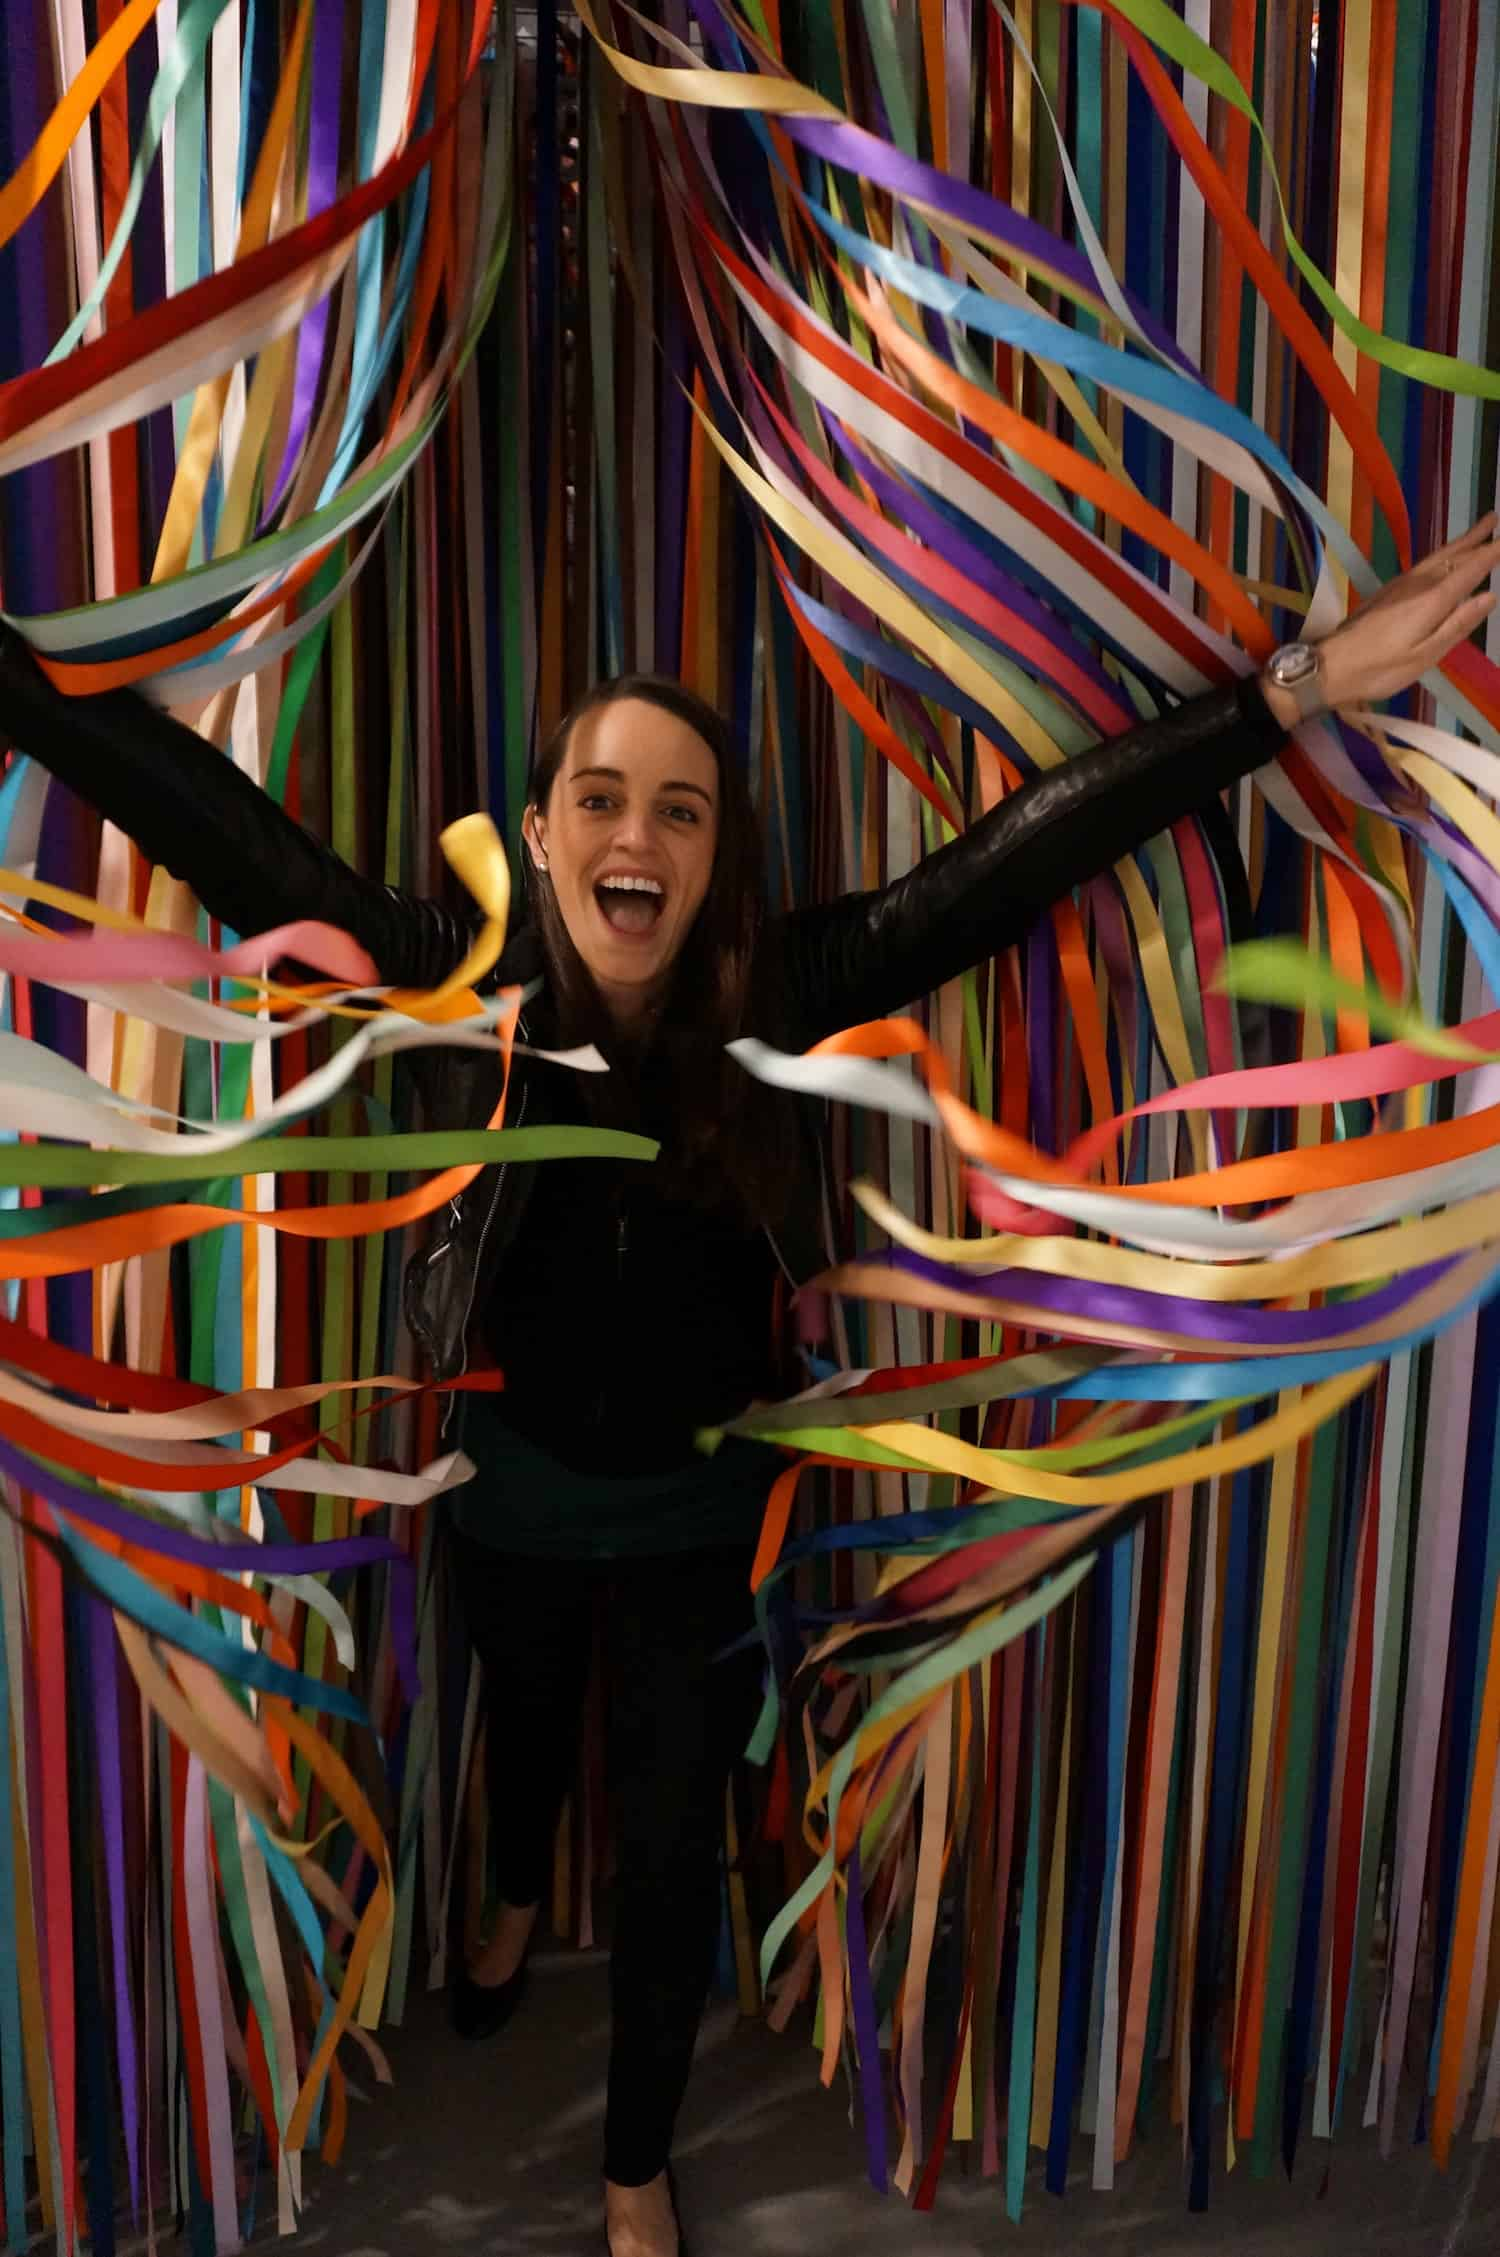 Valerie at Color Factory